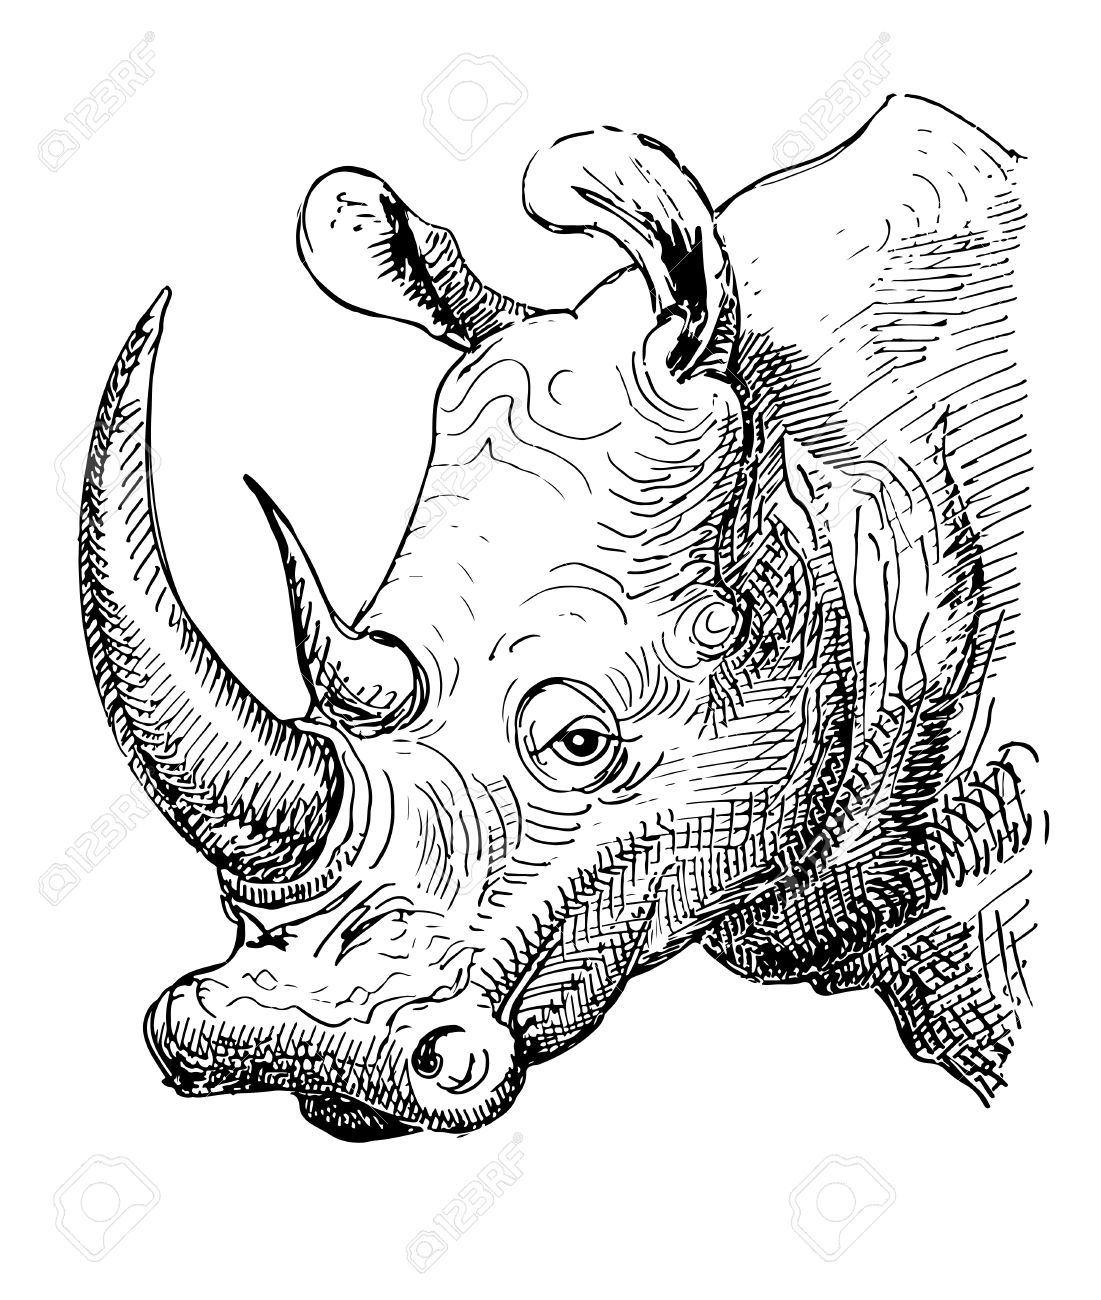 Artwork Rhinoceros, Sketch Black And White Drawing Of Realistic.